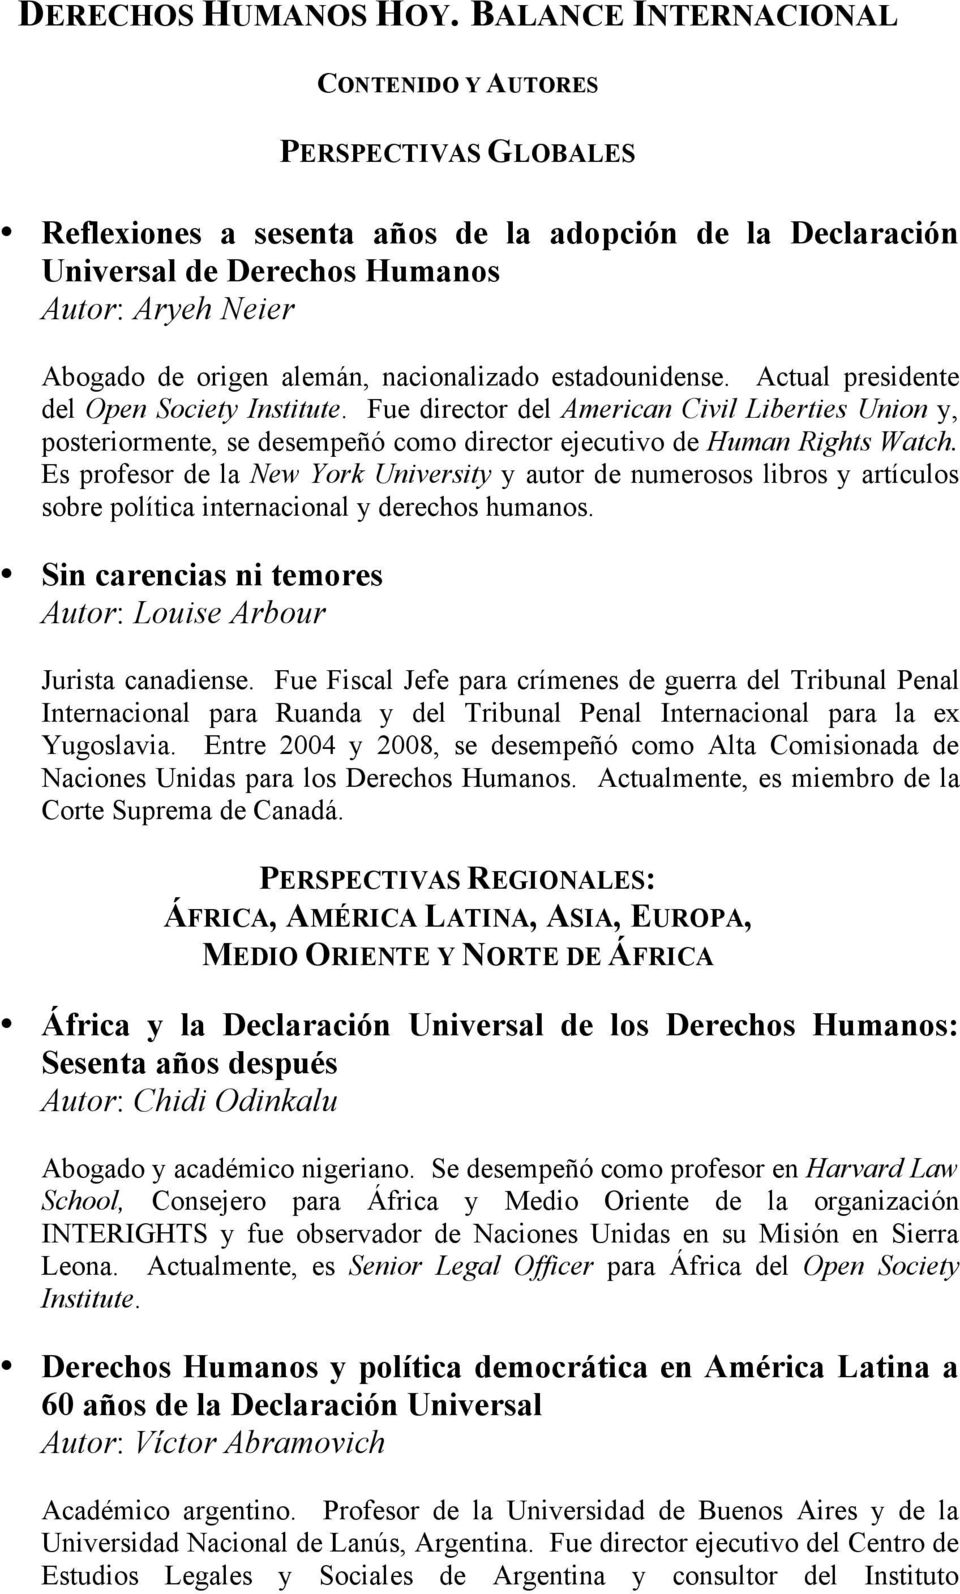 nacionalizado estadounidense. Actual presidente del Open Society Institute.